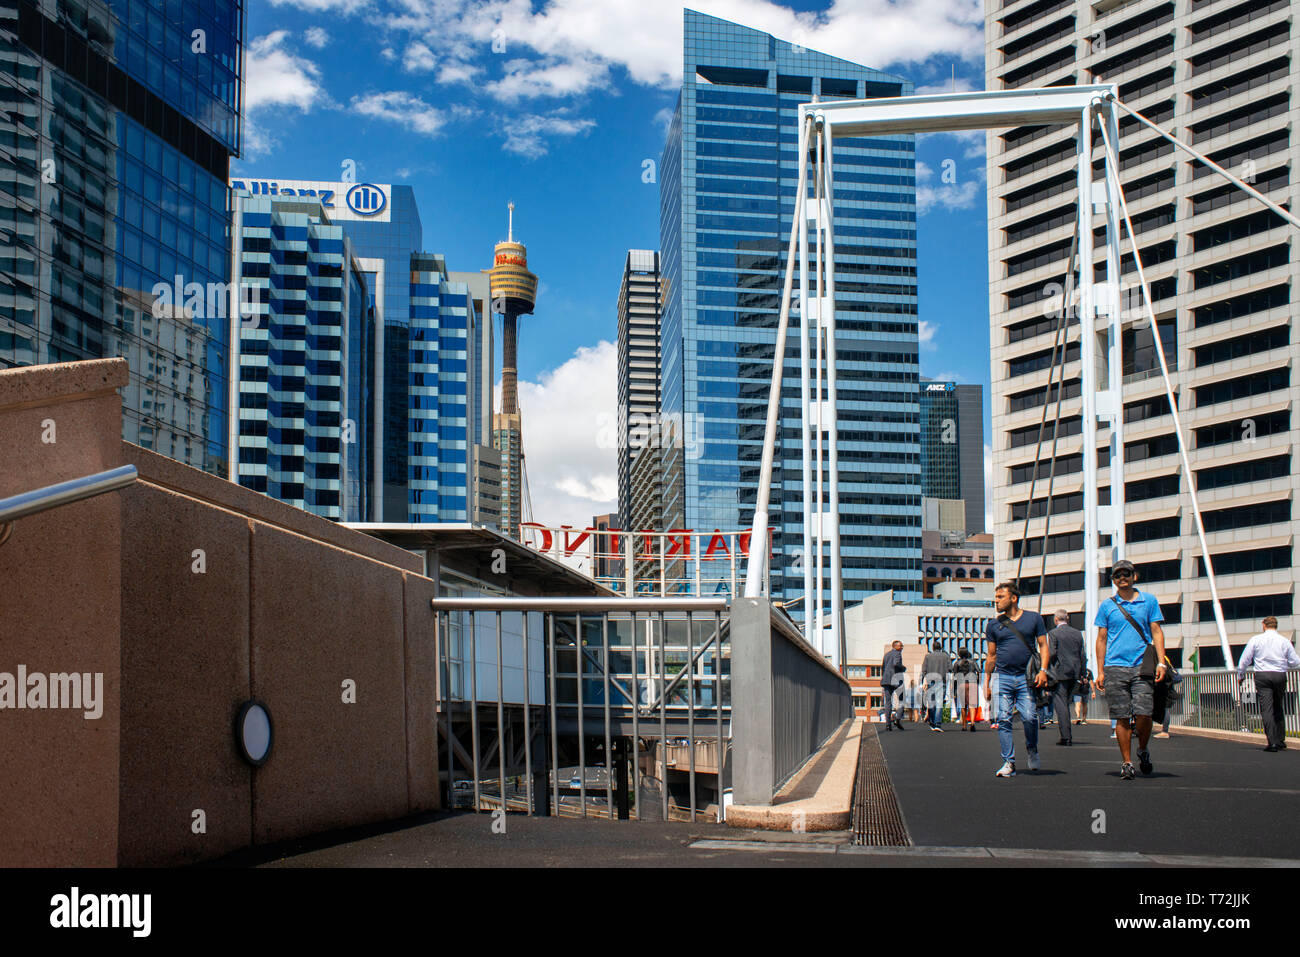 Sydney Tower Eye in Sydney city centre New South Wales Australia. Picture taken from Darling Harbour, Sydney, New South Wales, Australia - Stock Image